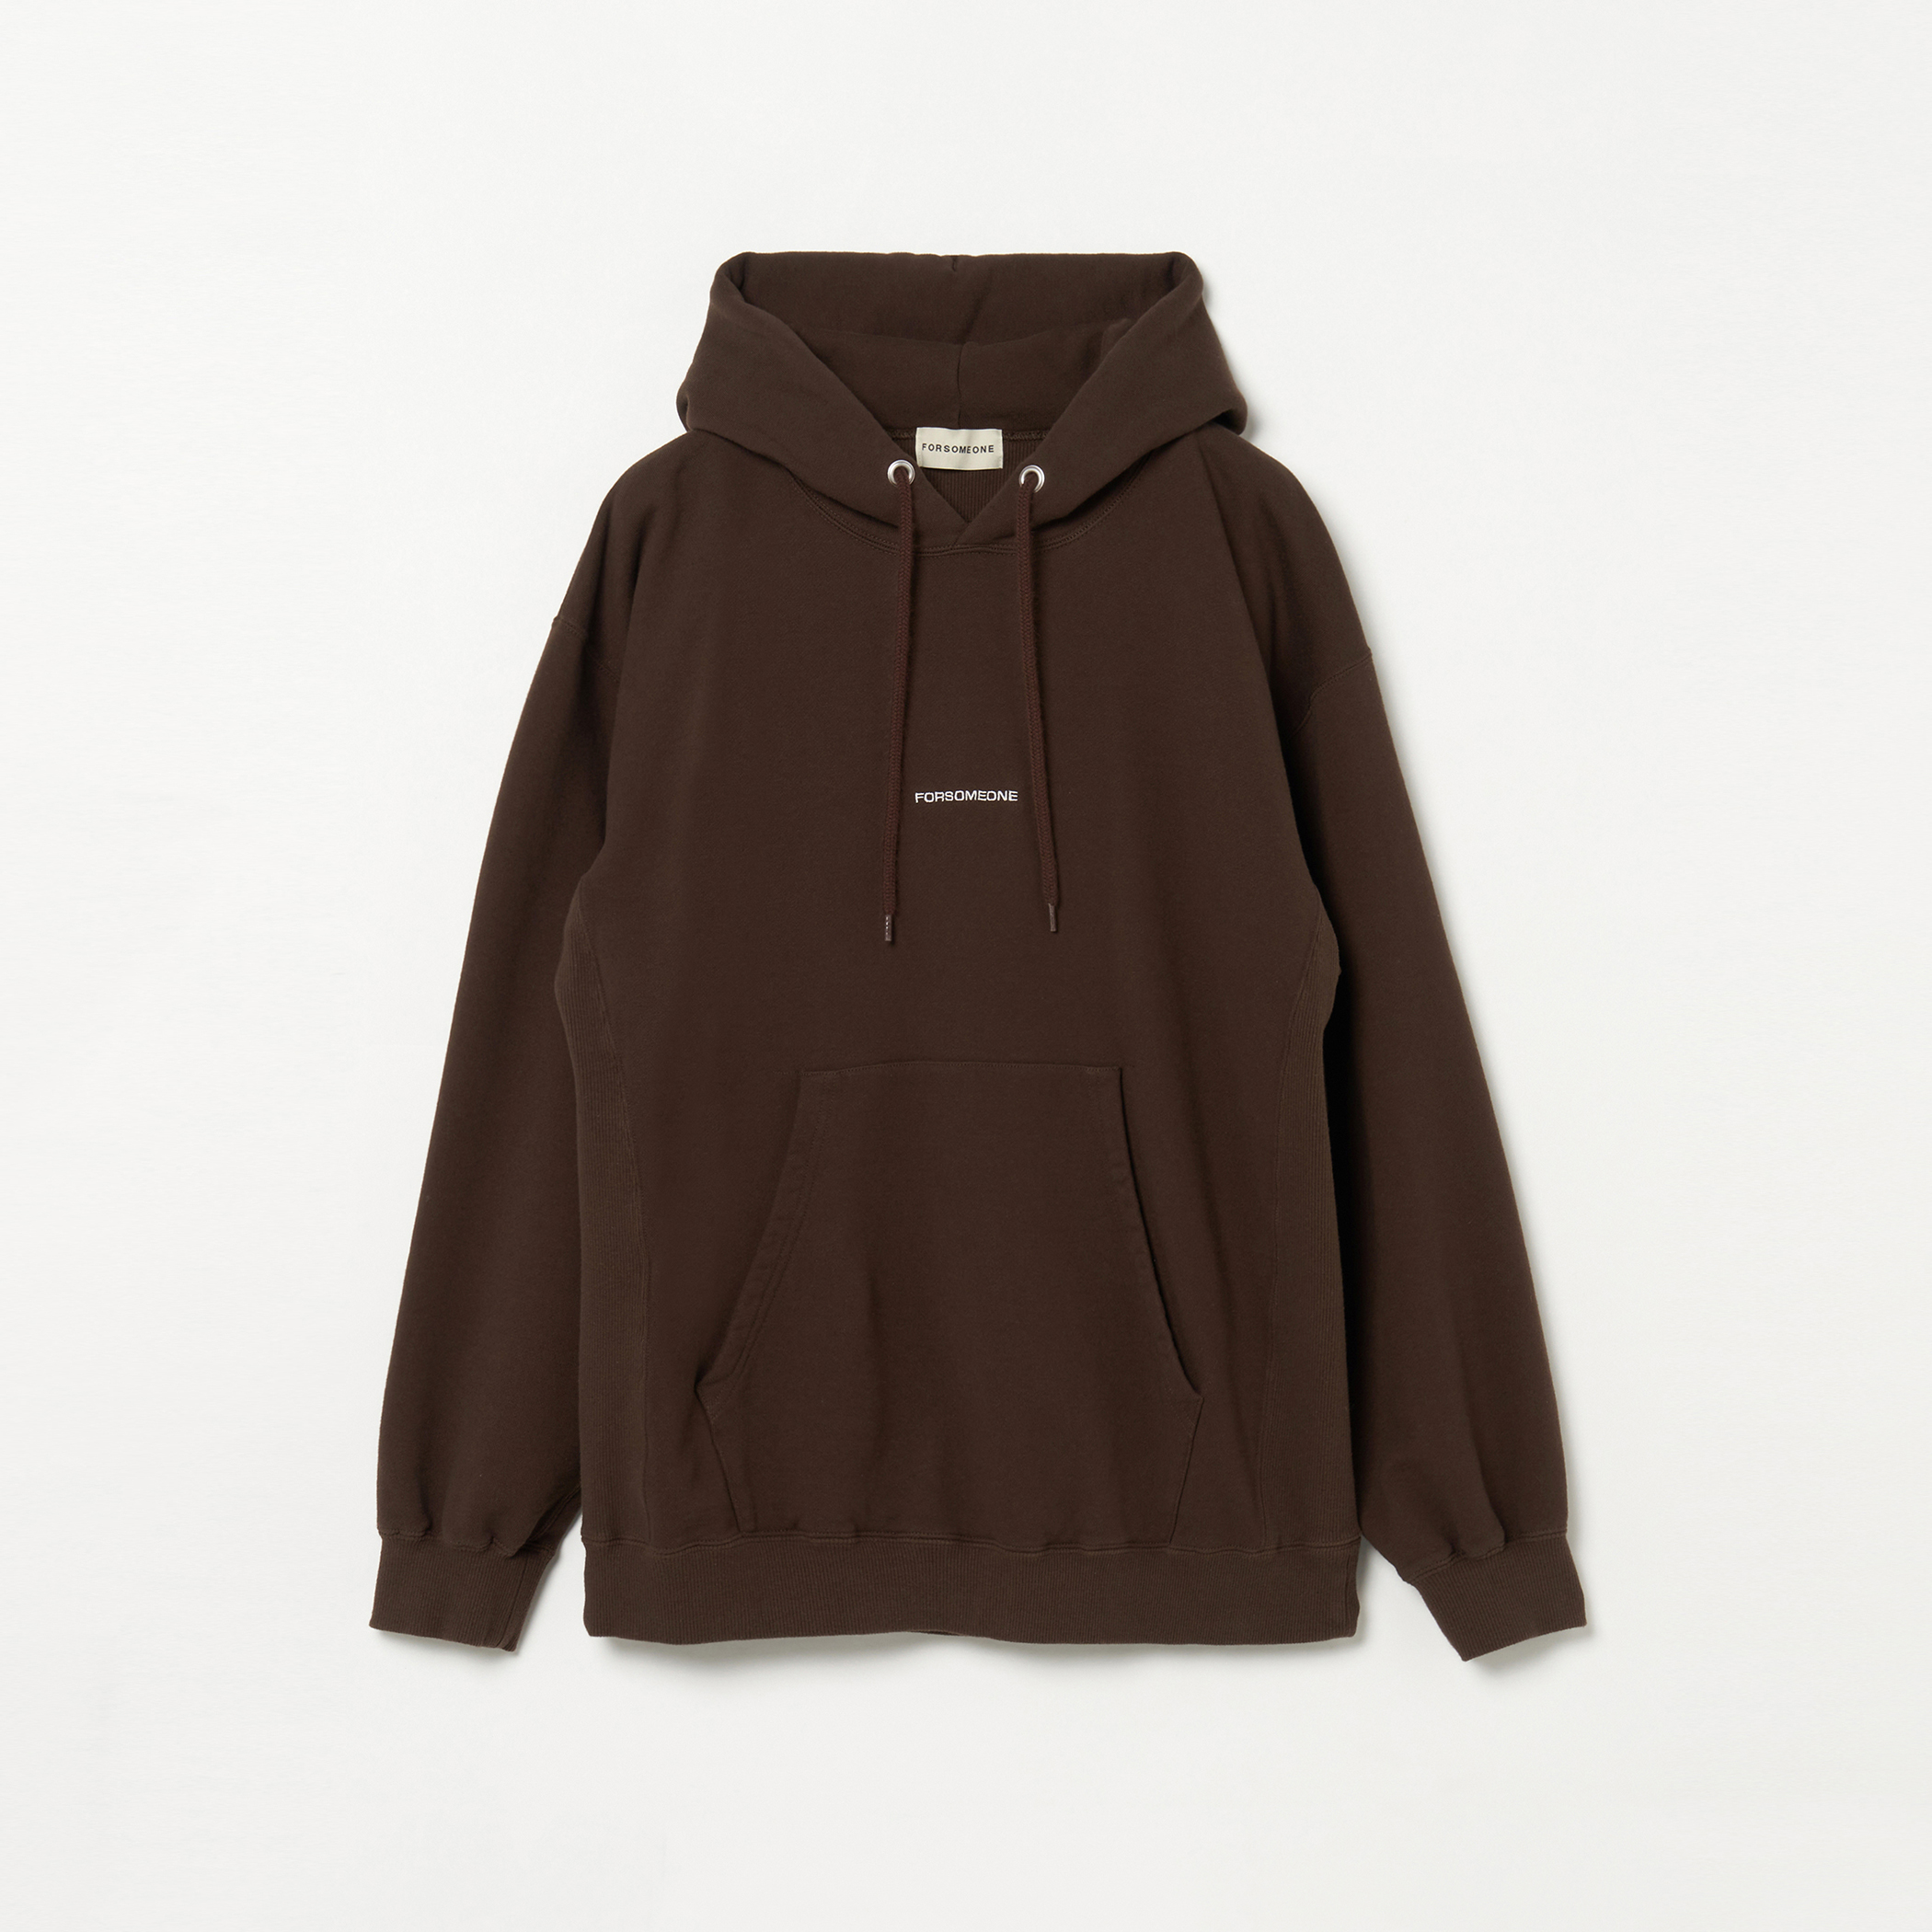 FSO EMBRO HOODIE 詳細画像 Brown 6